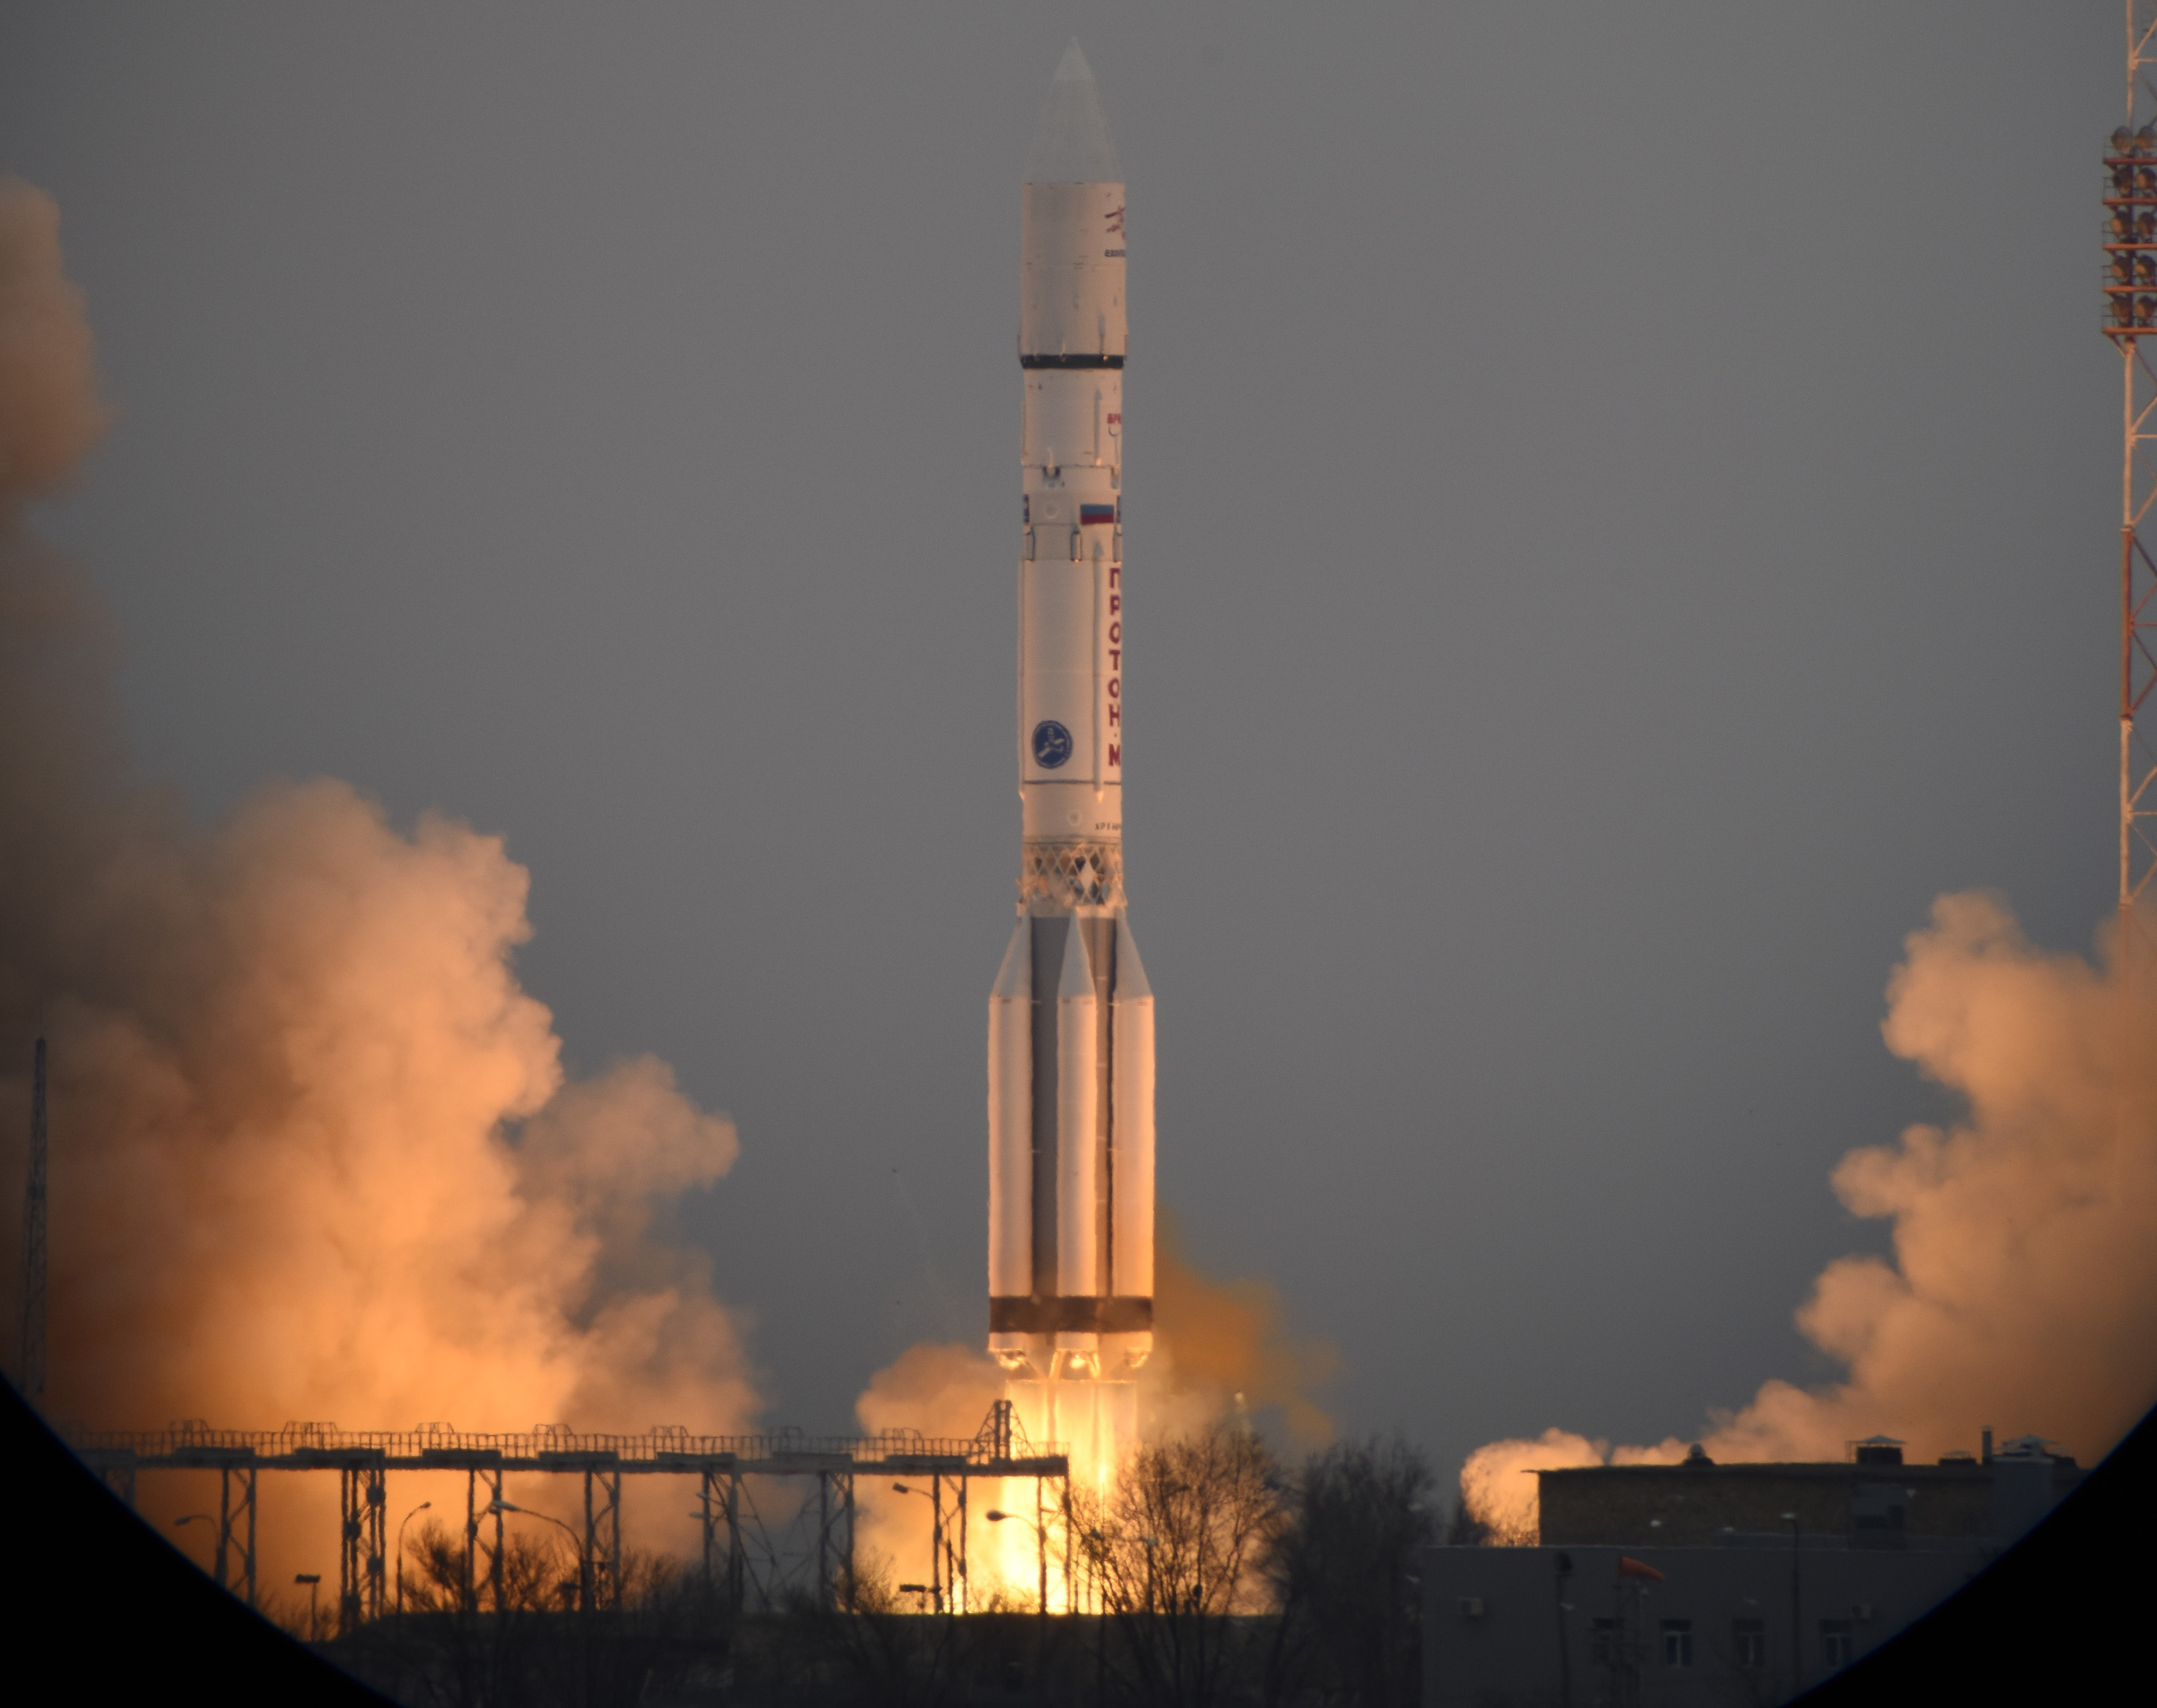 Russia S Proton Rocket Faces Extended Grounding Due To